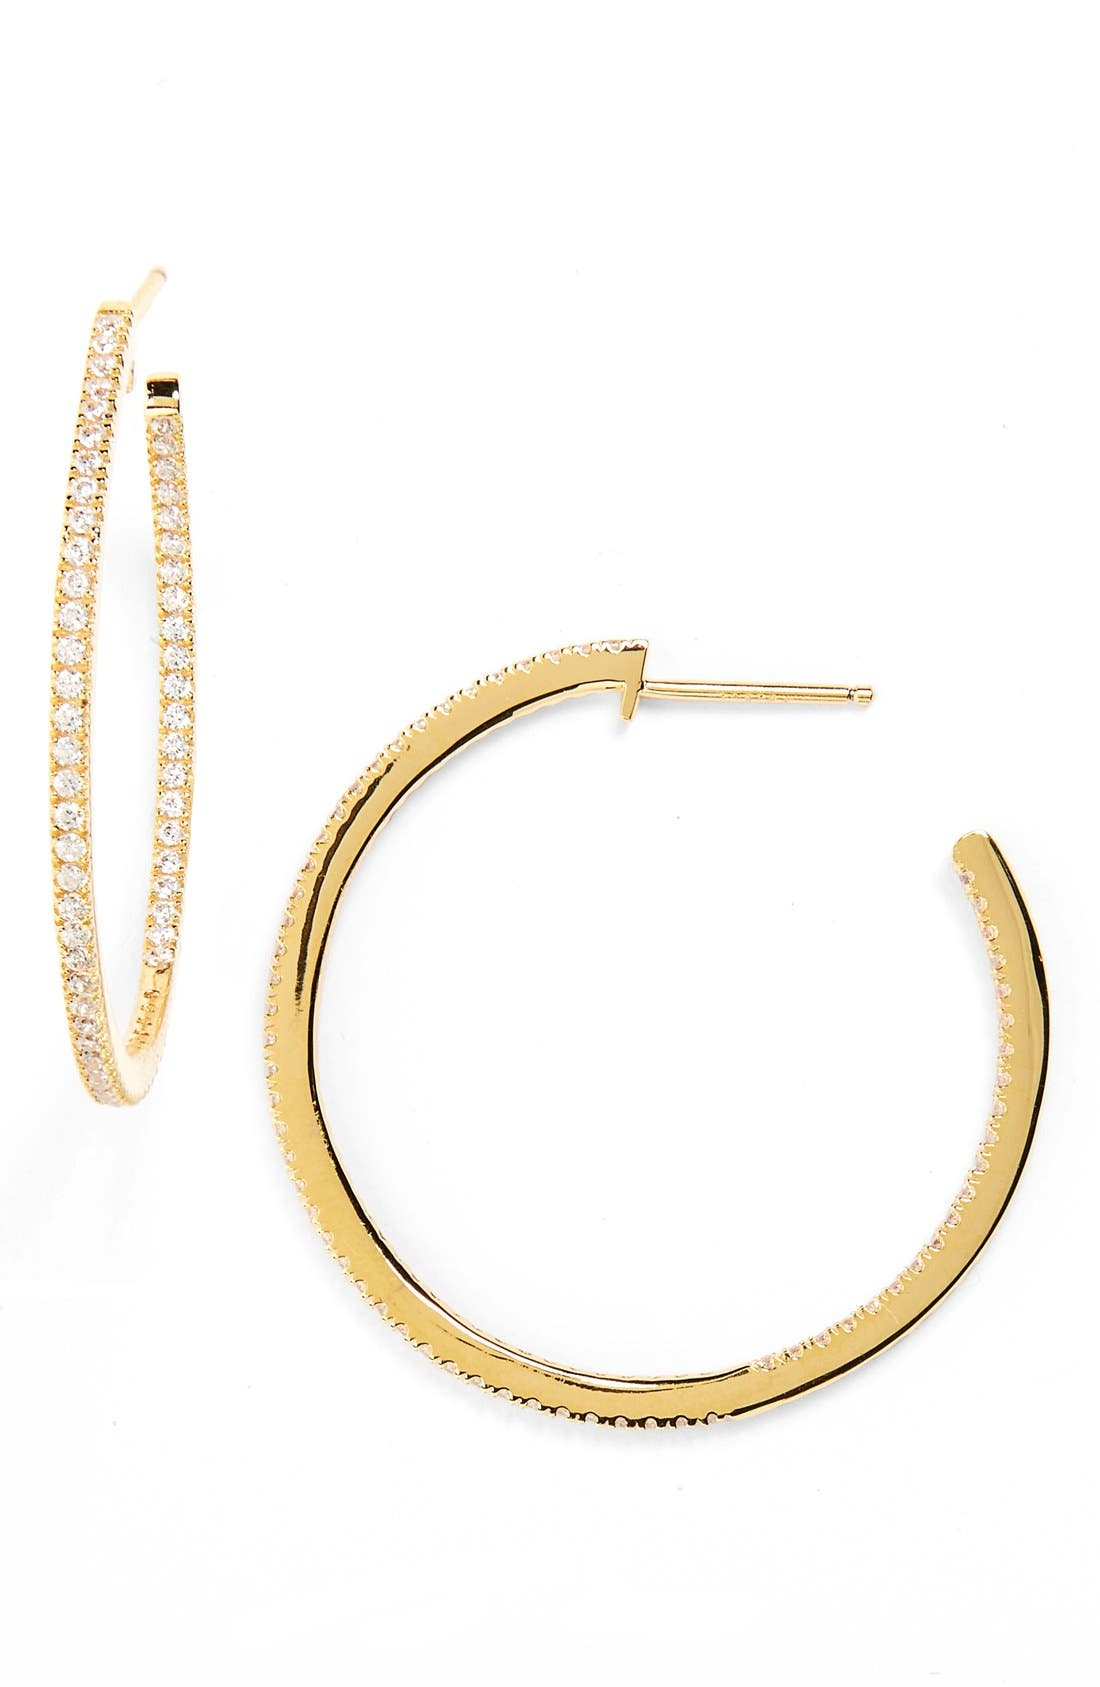 Main Image - Nordstrom Inside Out Hoop Earrings